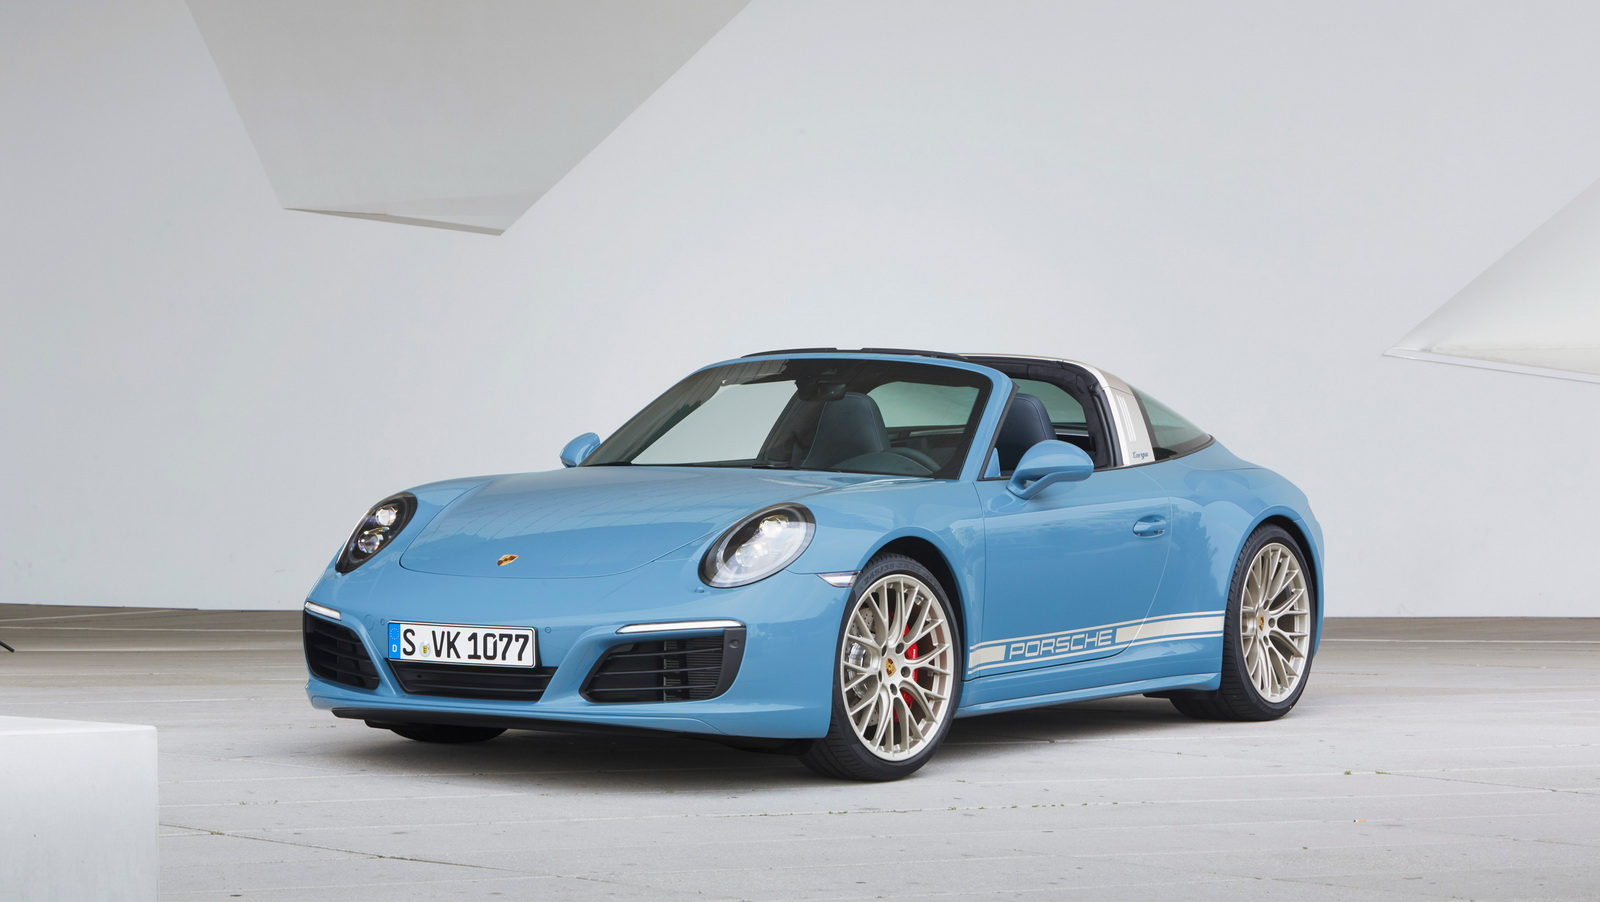 Porsche 911 991.2 Exclusive Design Edition Targa 4S blauw 04